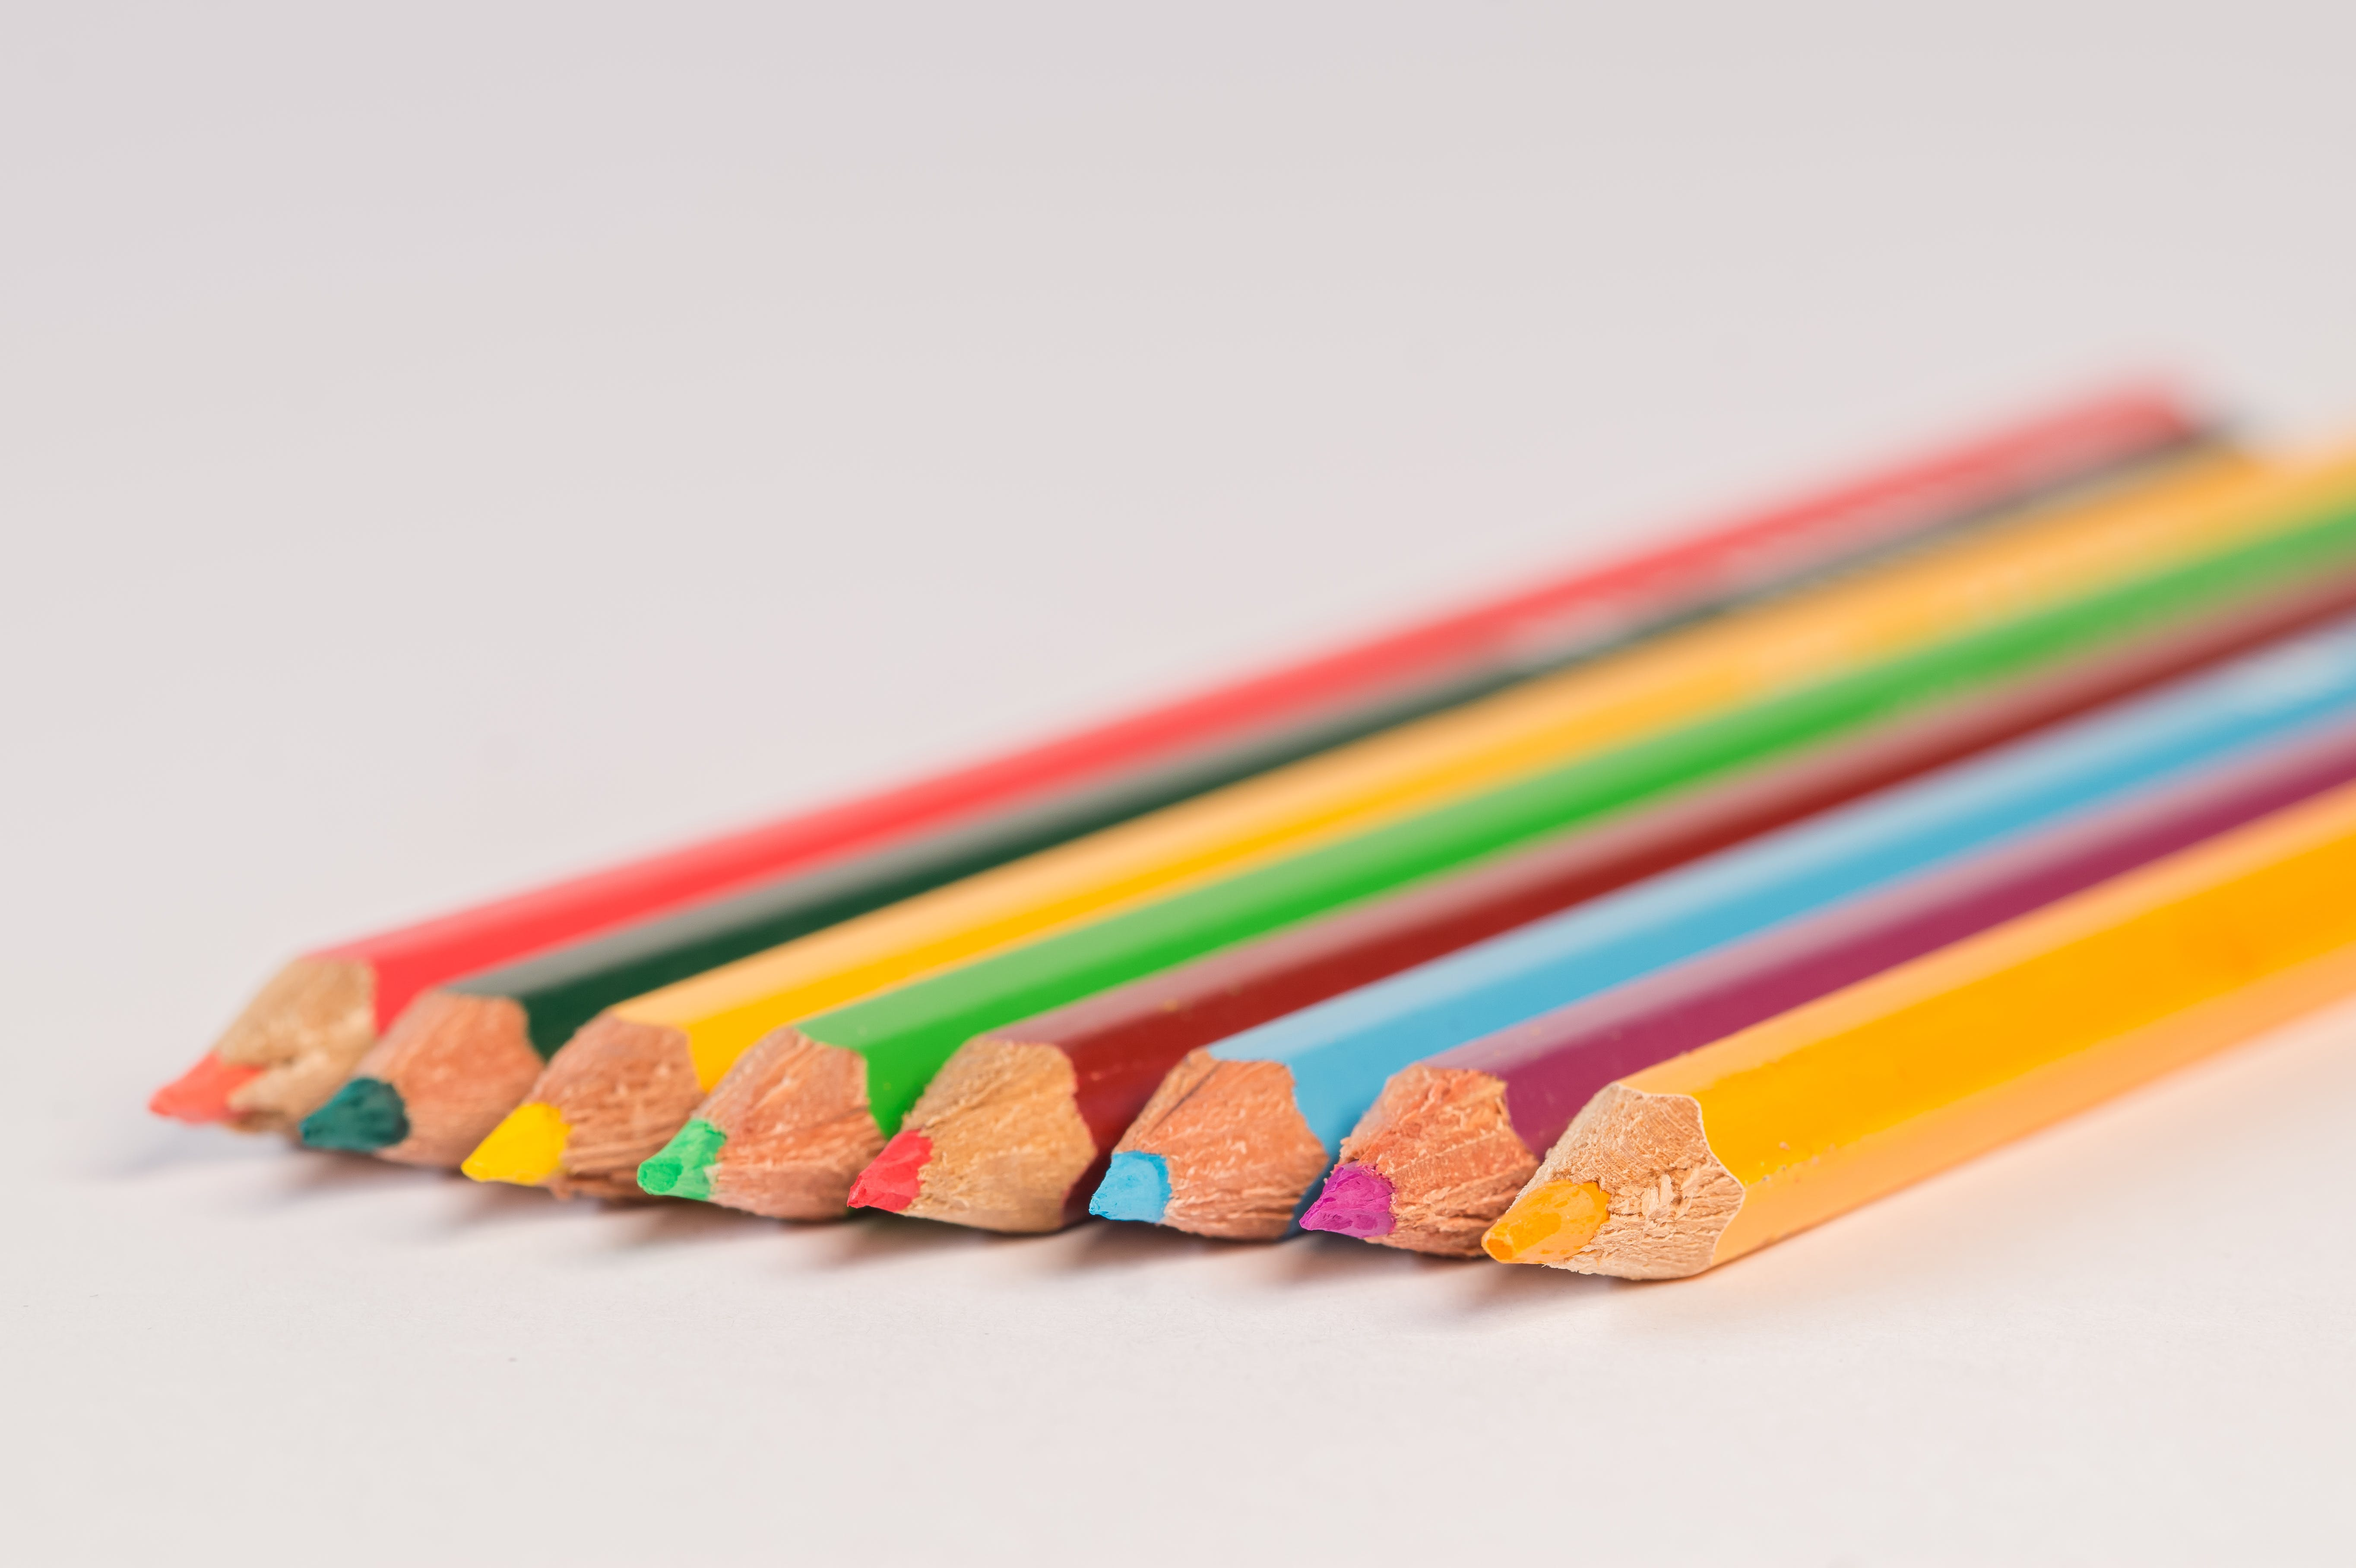 Assorted-colored Pencils